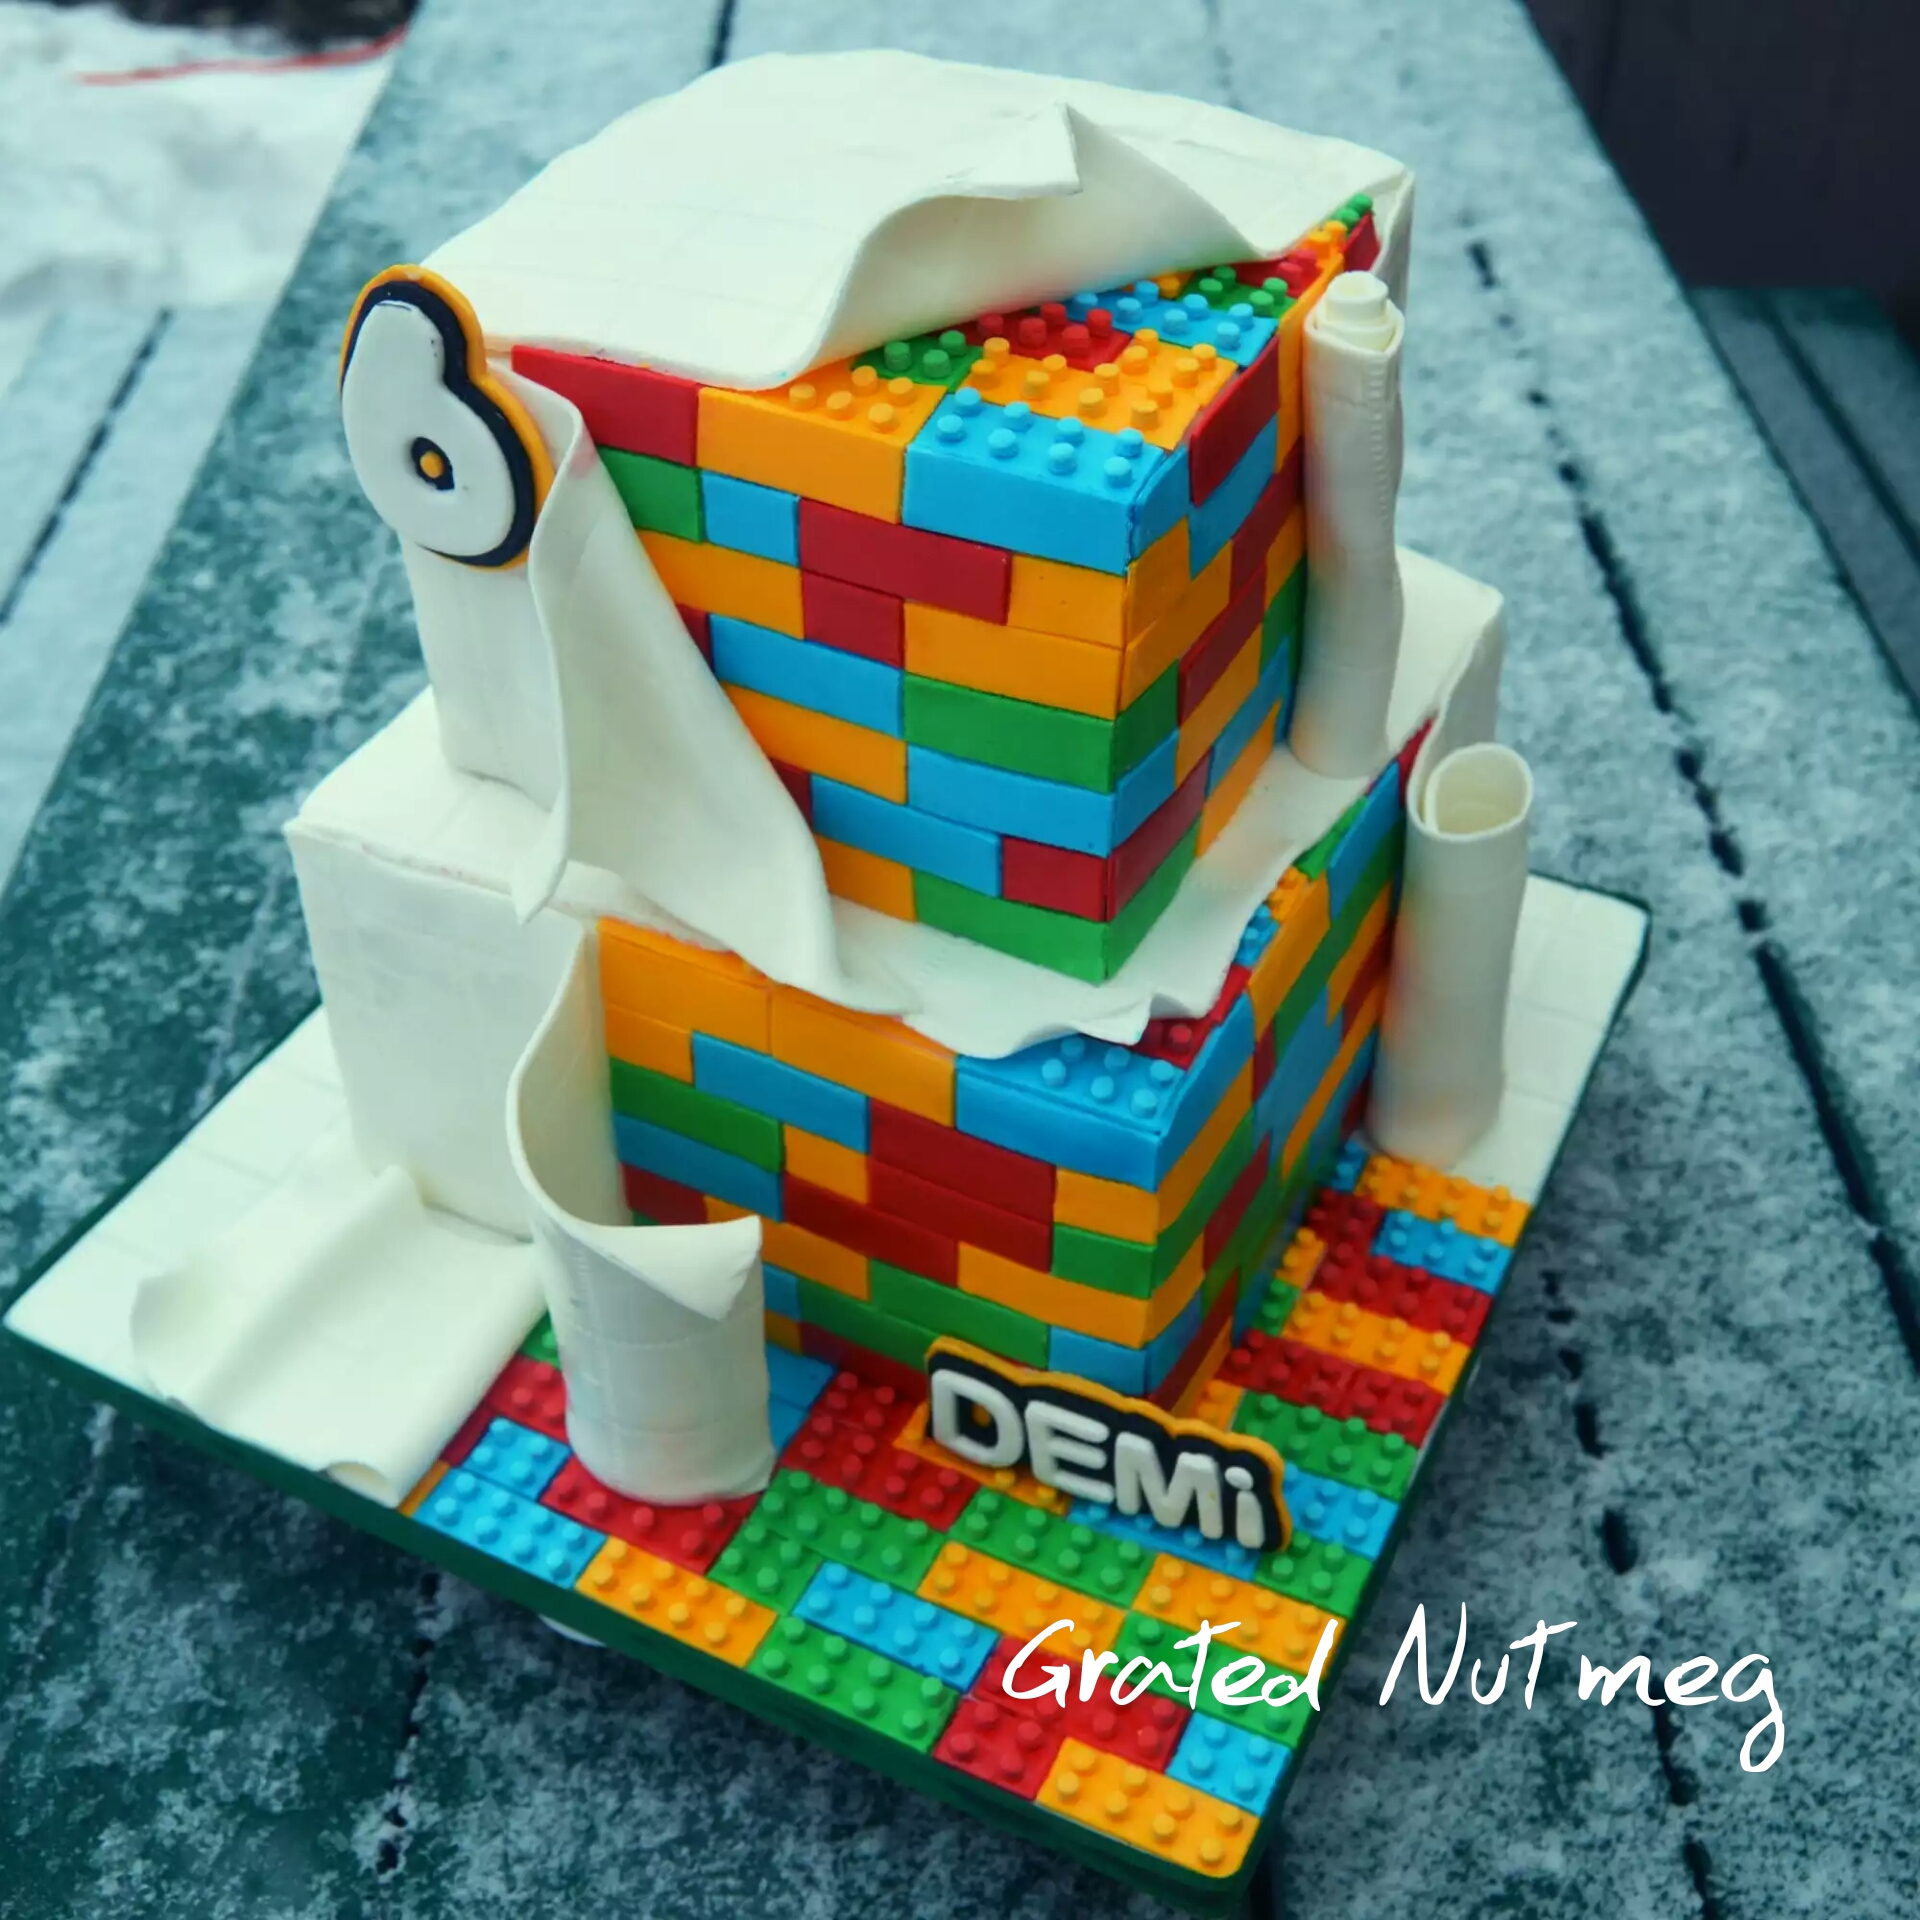 The Making Of A Lego Cake Grated Nutmeg